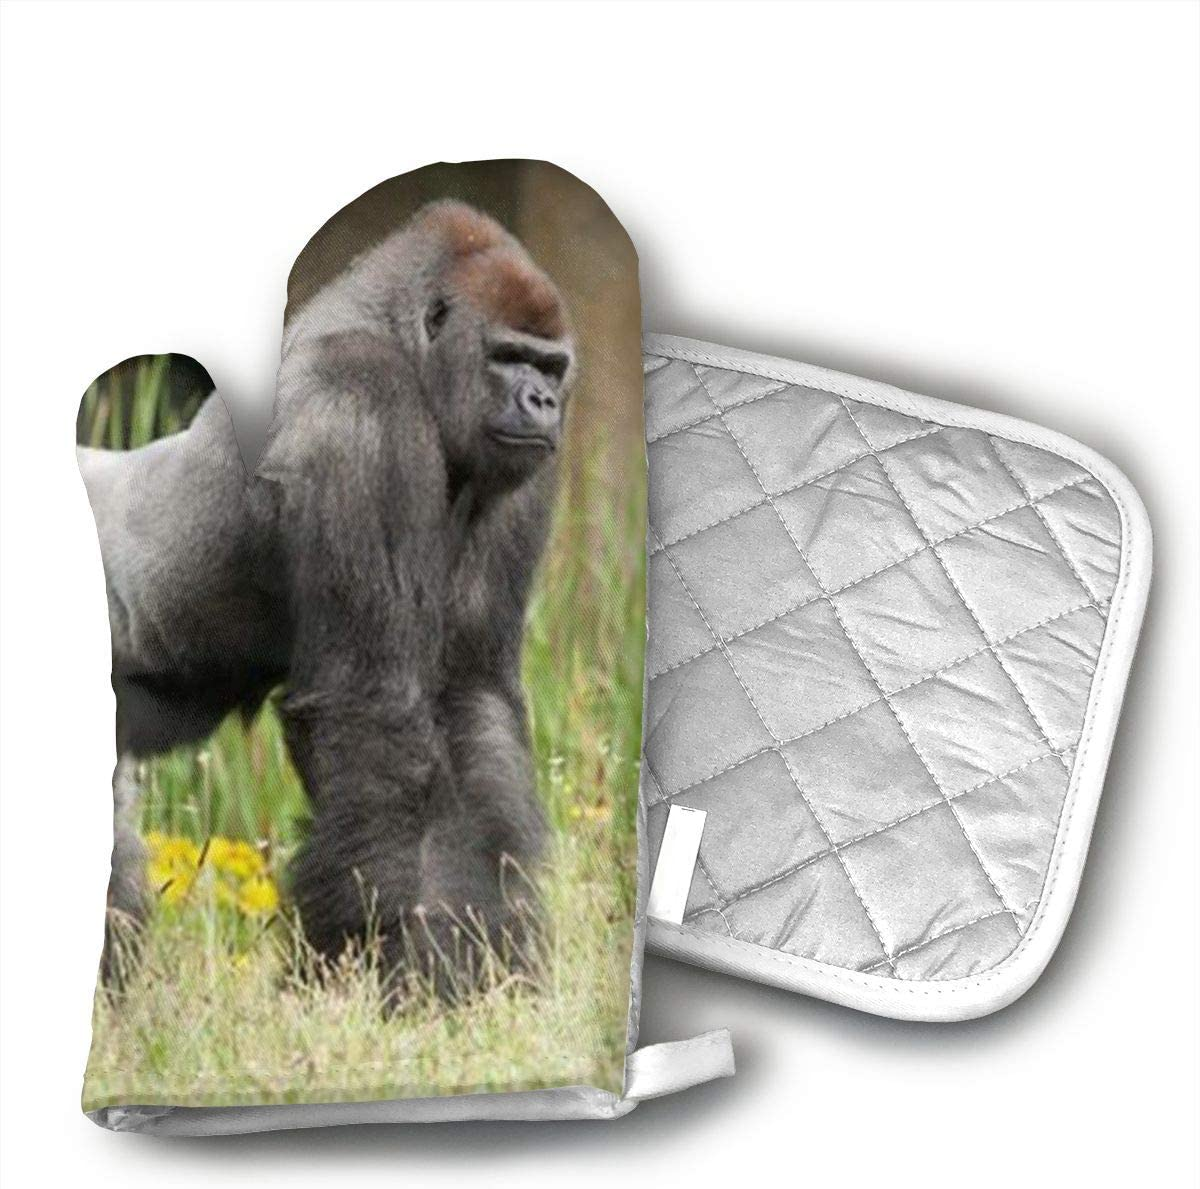 HAIQLK Gorilla in The Green Grass Art Print Oven Gloves Non-Slip Kitchen Oven Mitts Heat Resistant Cooking Gloves for Cooking, Baking, Barbecue Potholder,